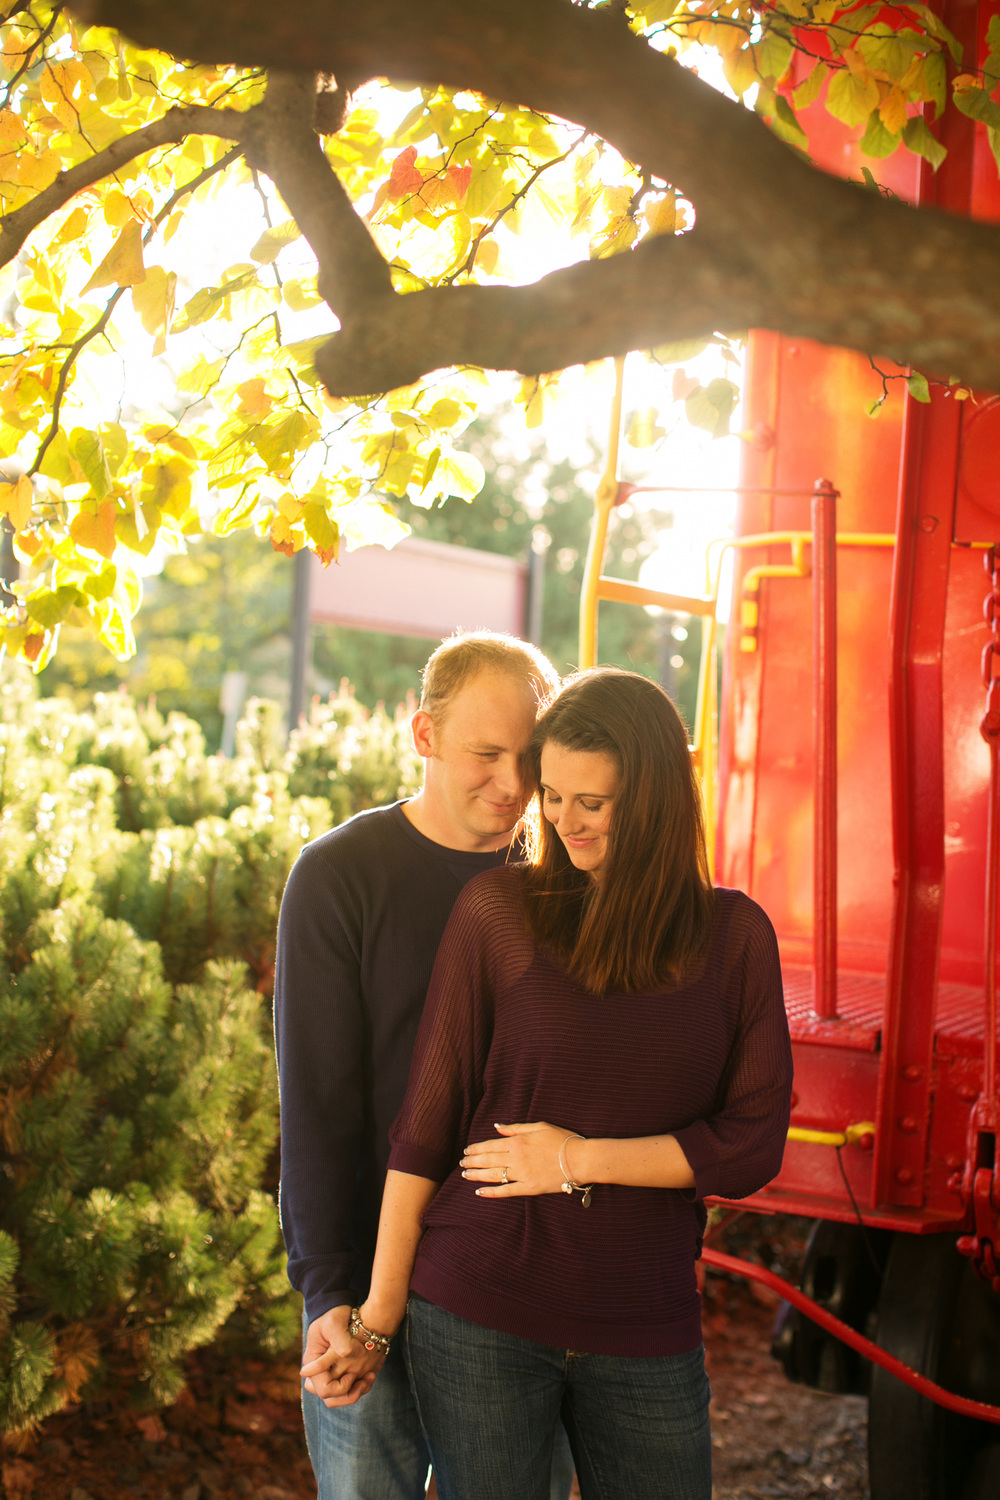 741-old-town-manassas-engagement-photography.jpg